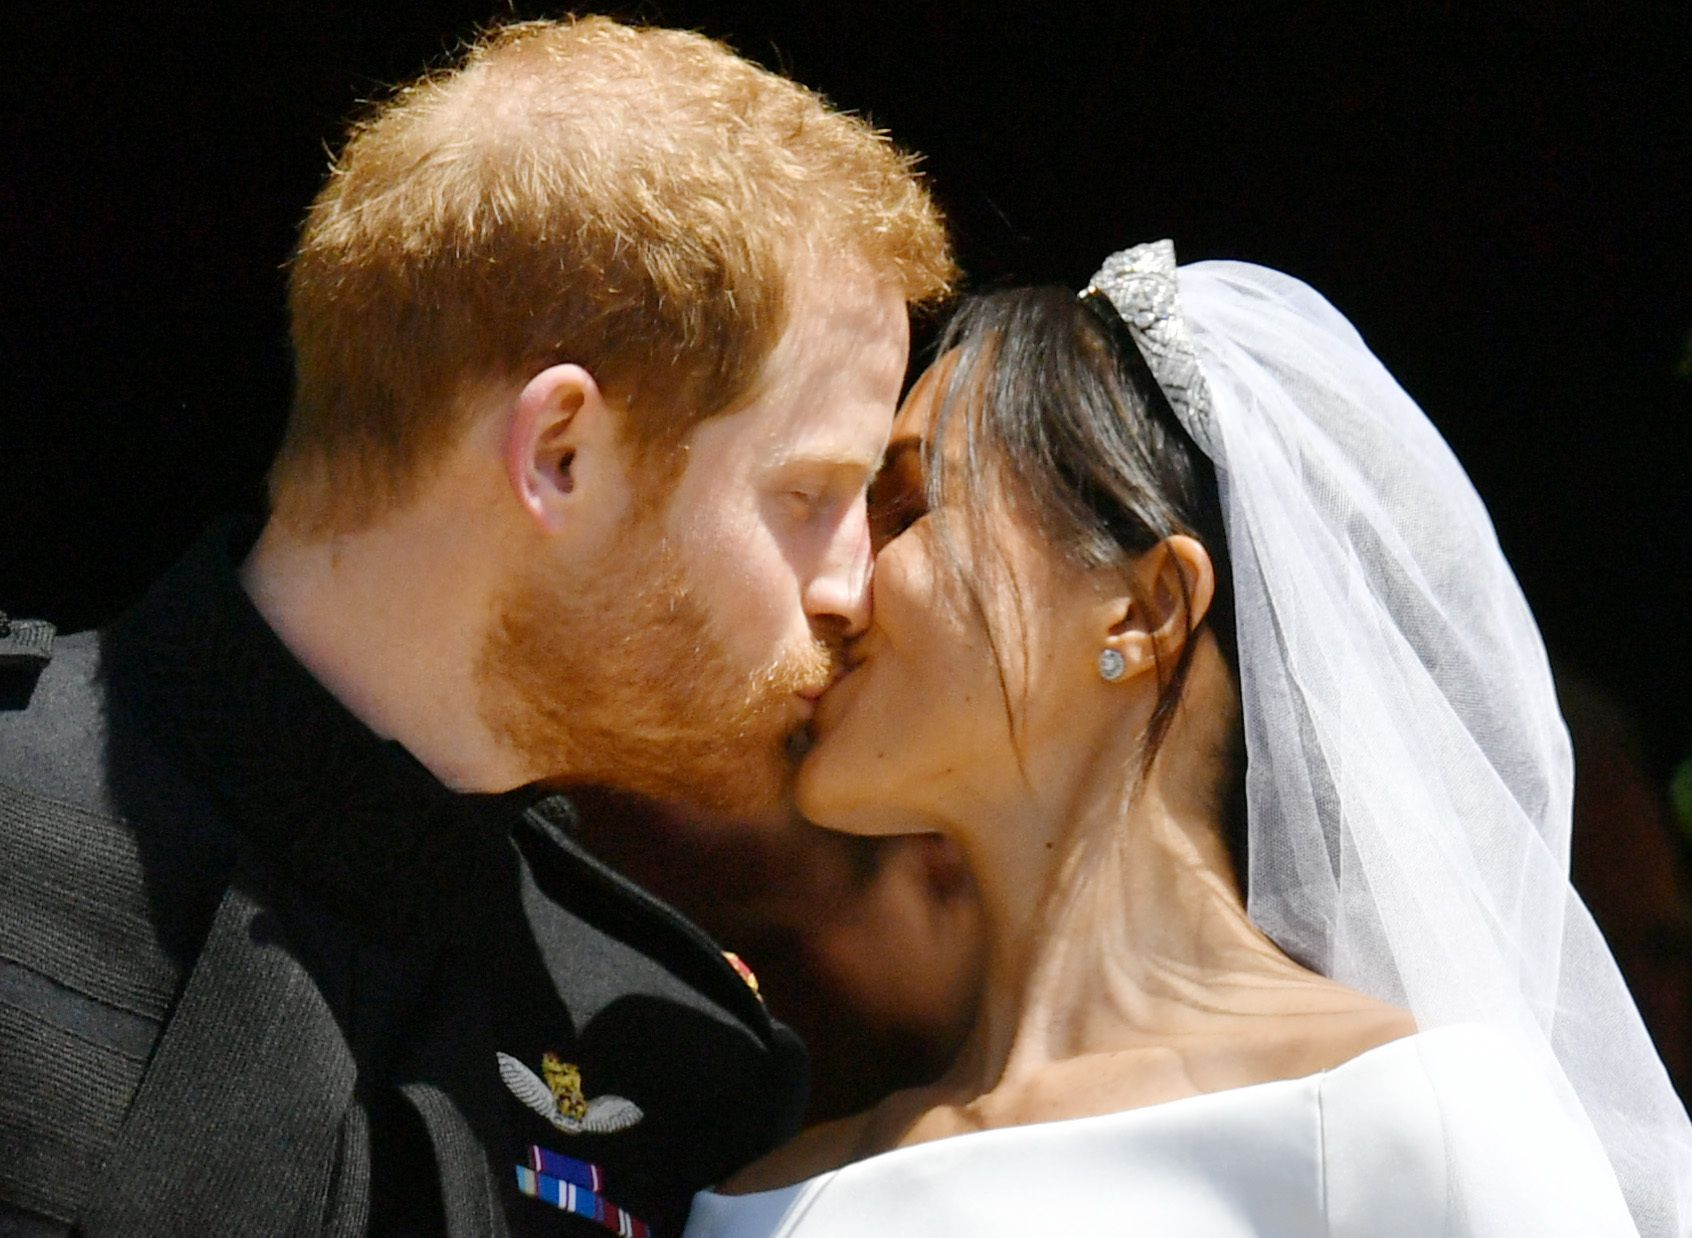 Meghan Markle and Prince Harry Share Intimate New Wedding Photos in Honor of Their Anniversary